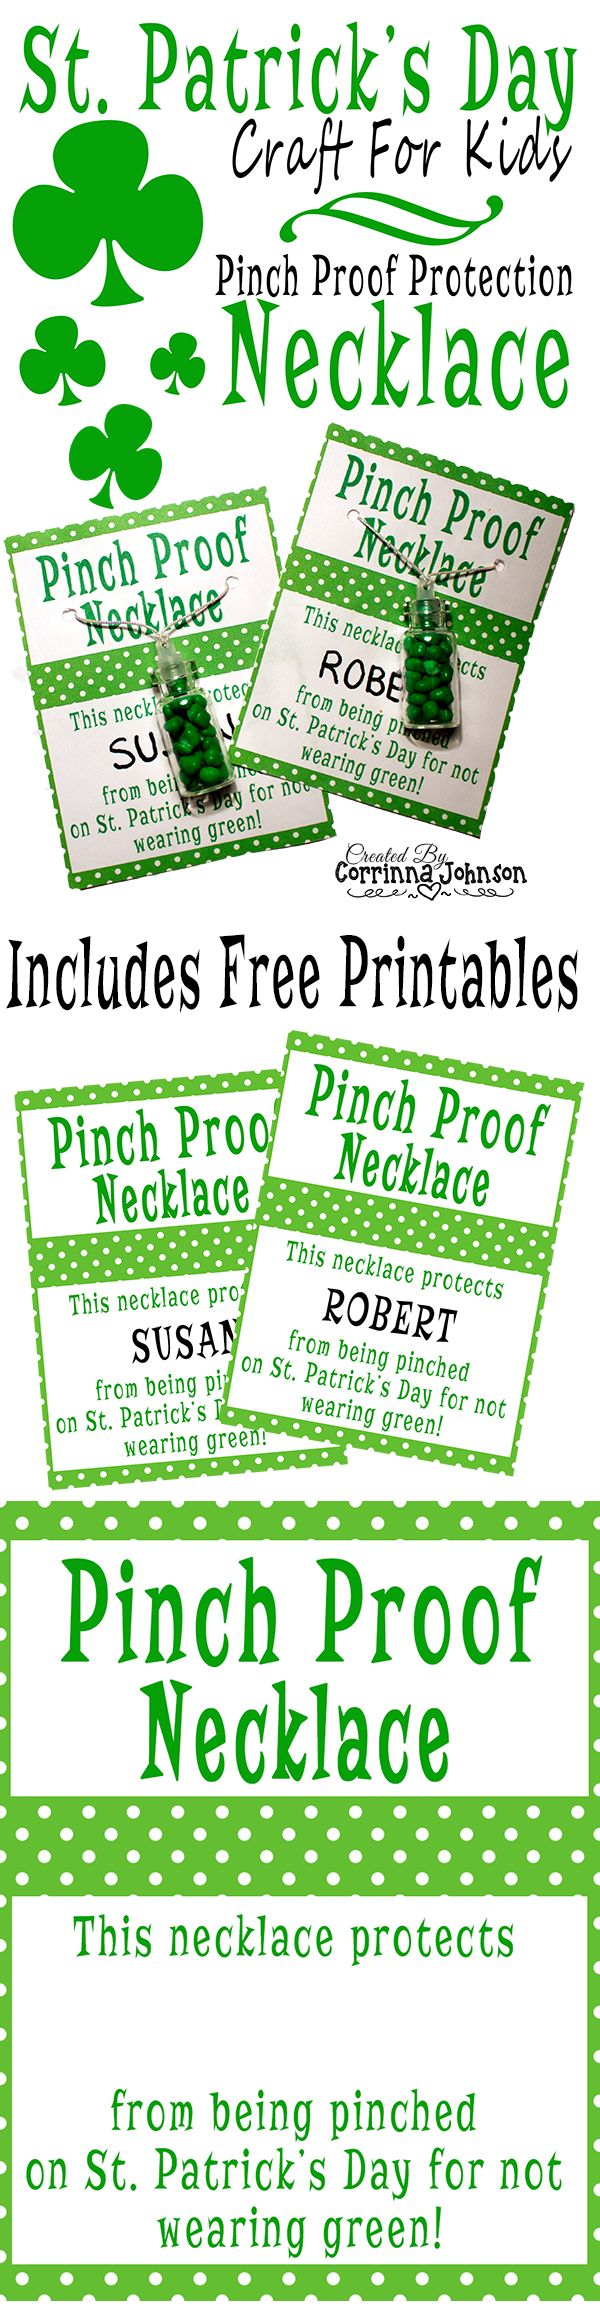 St. Patrick's Day Craft - Pinch Proof Protection Candy Necklaces | Includes Free St. Patrick's Day Printables